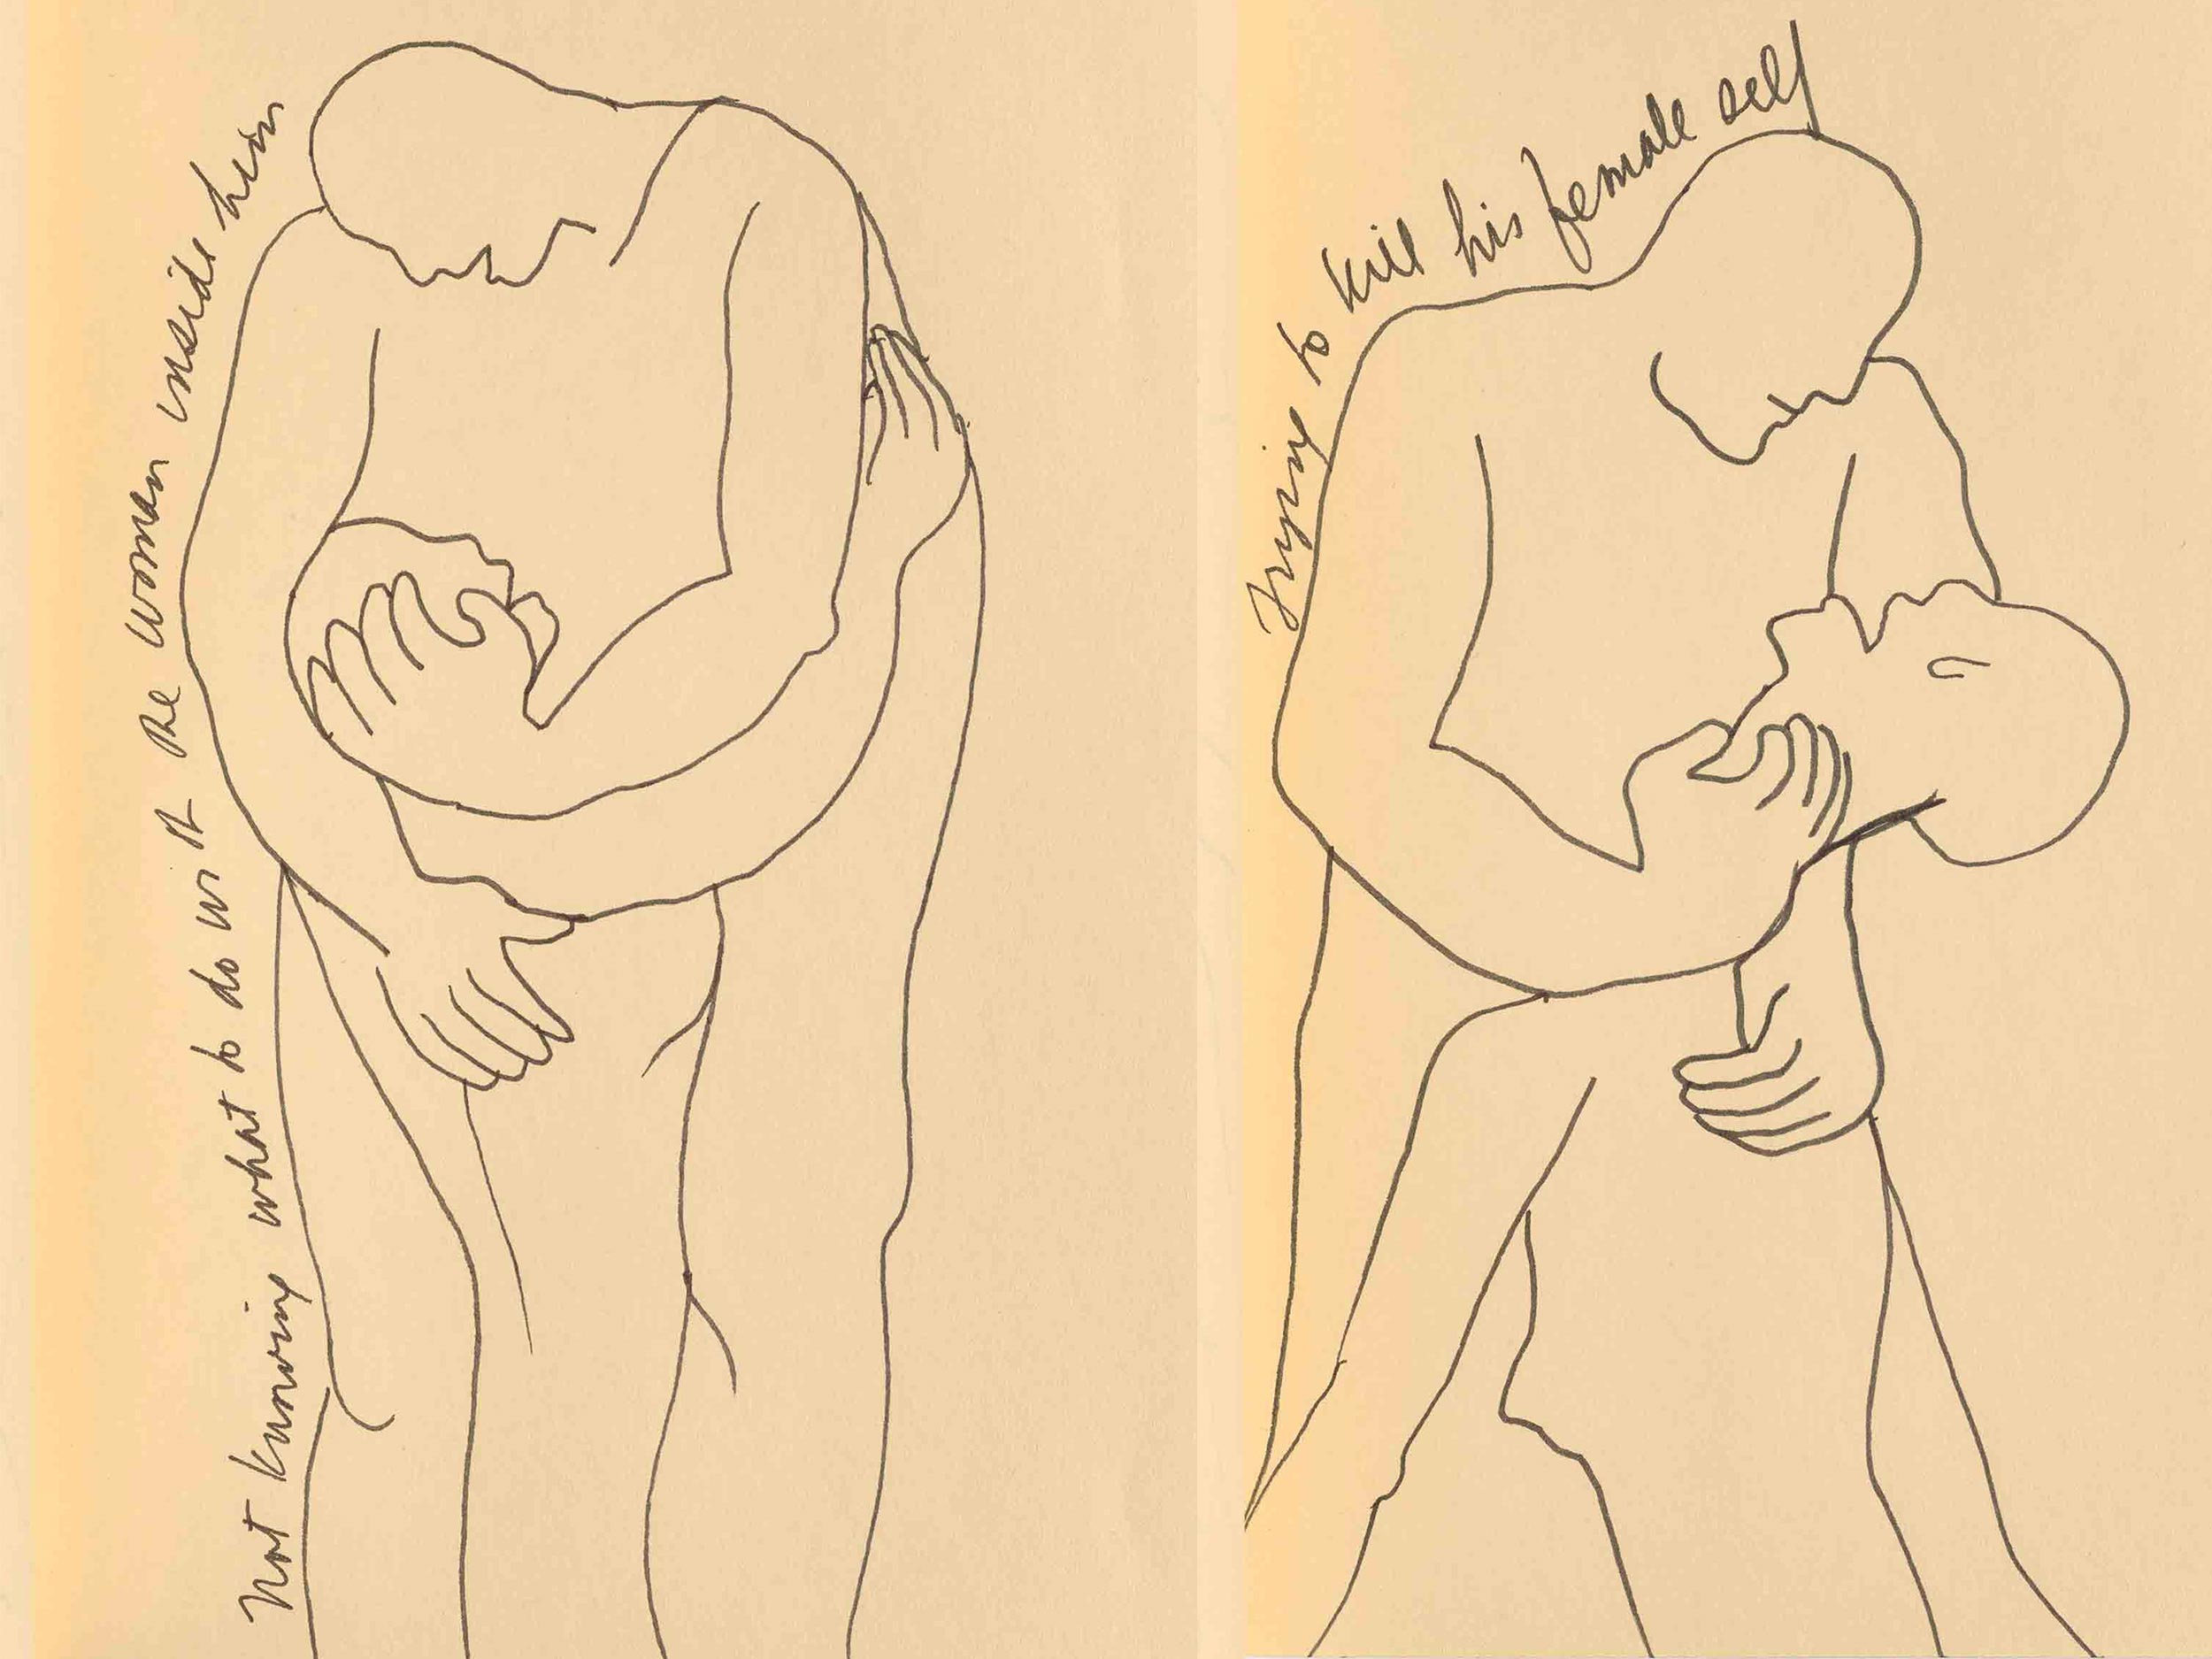 Judy Chicago's 1983 sketches still threaten the patriarchy